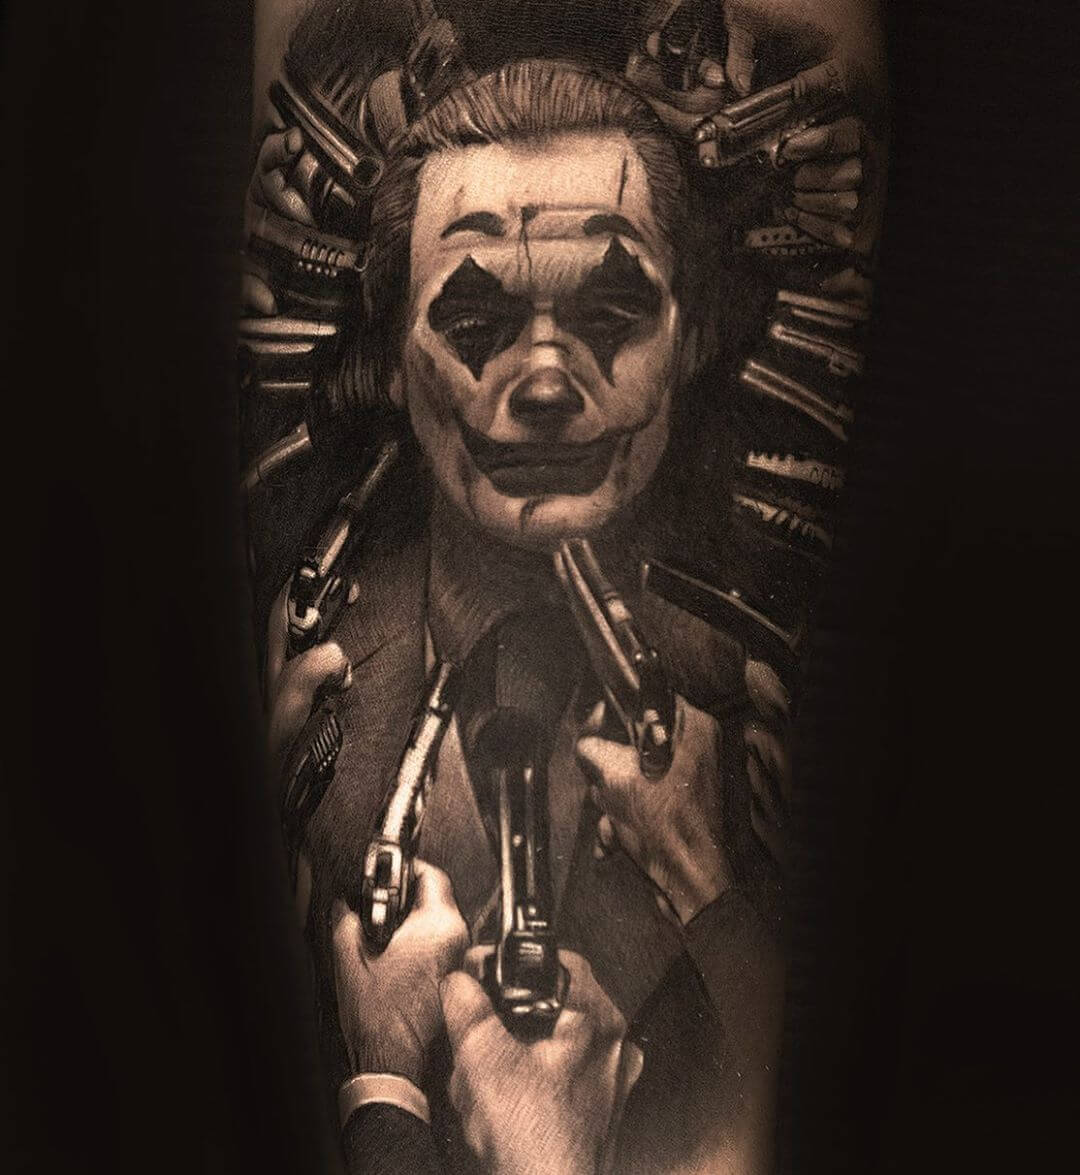 Tattoo of Joaquin Phoenix as the joker surrounded with guns to his head